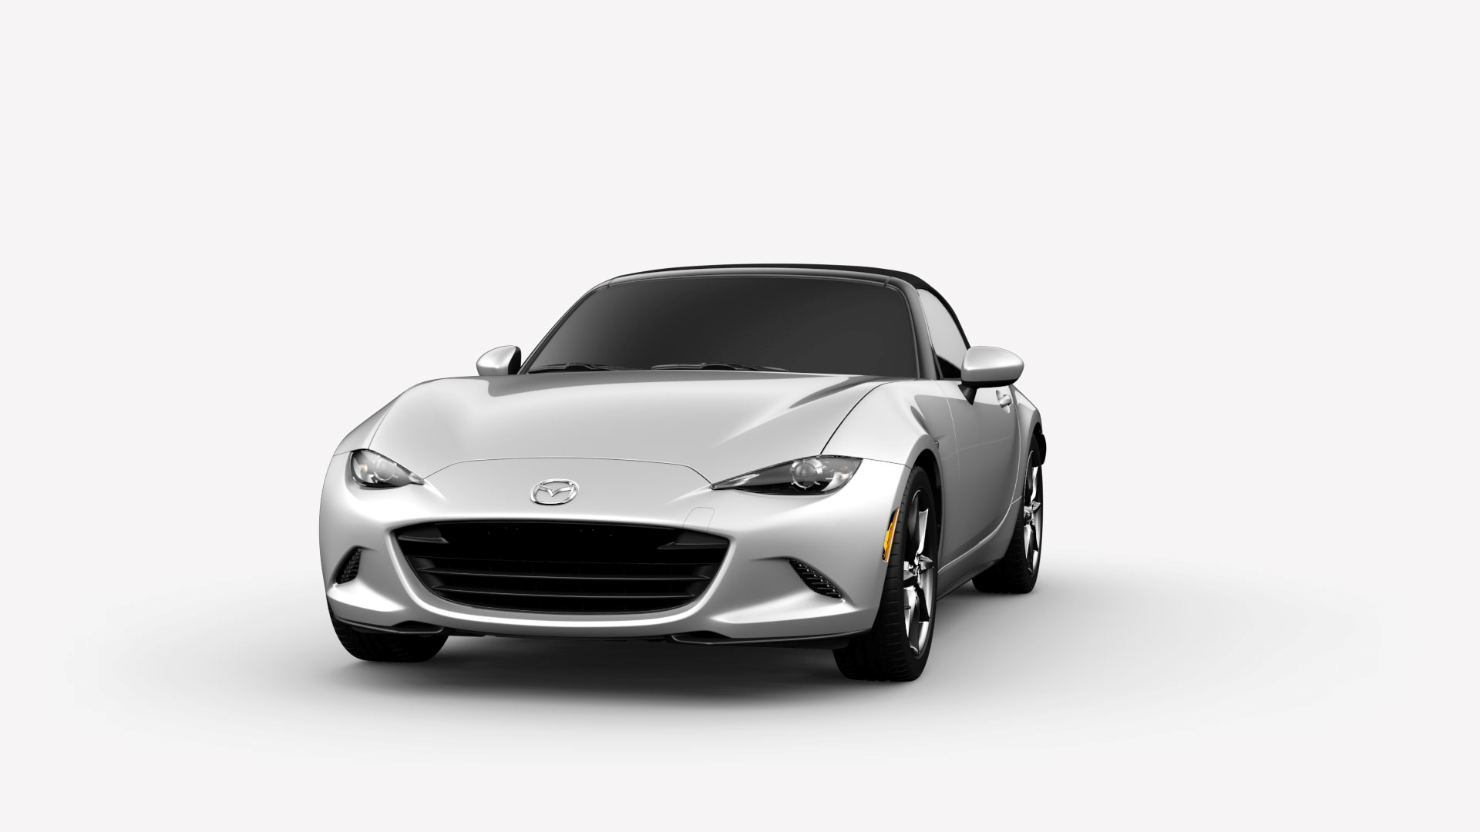 2017 mx-5 miata ceramic metallic